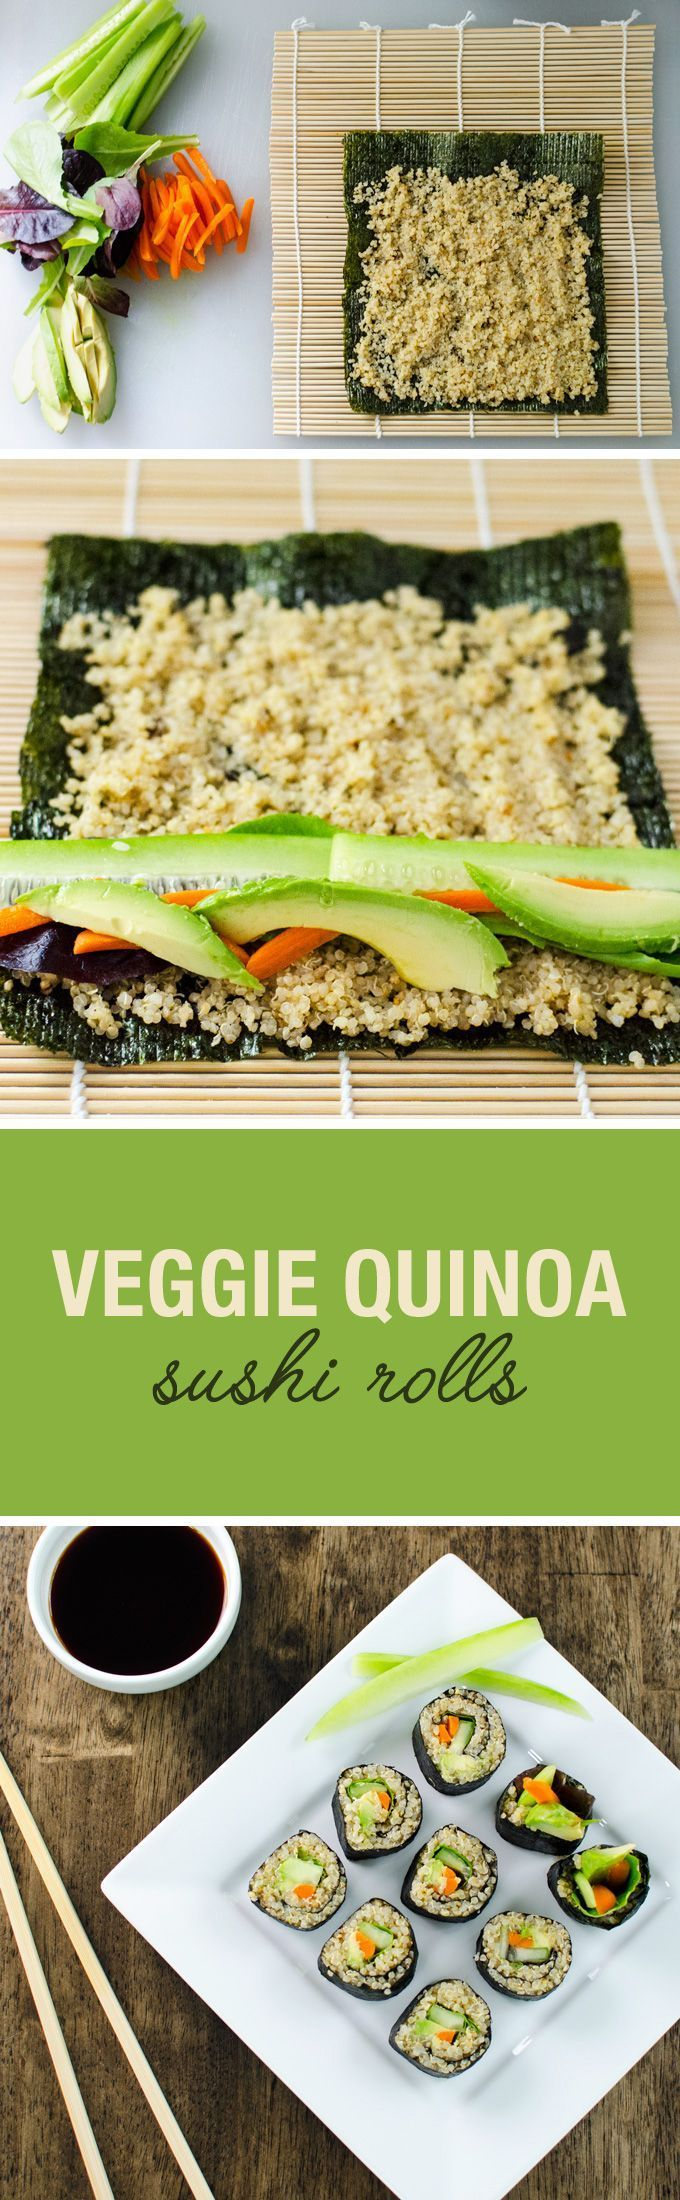 Easy and delicious Veggie Quinoa Sushi Rolls